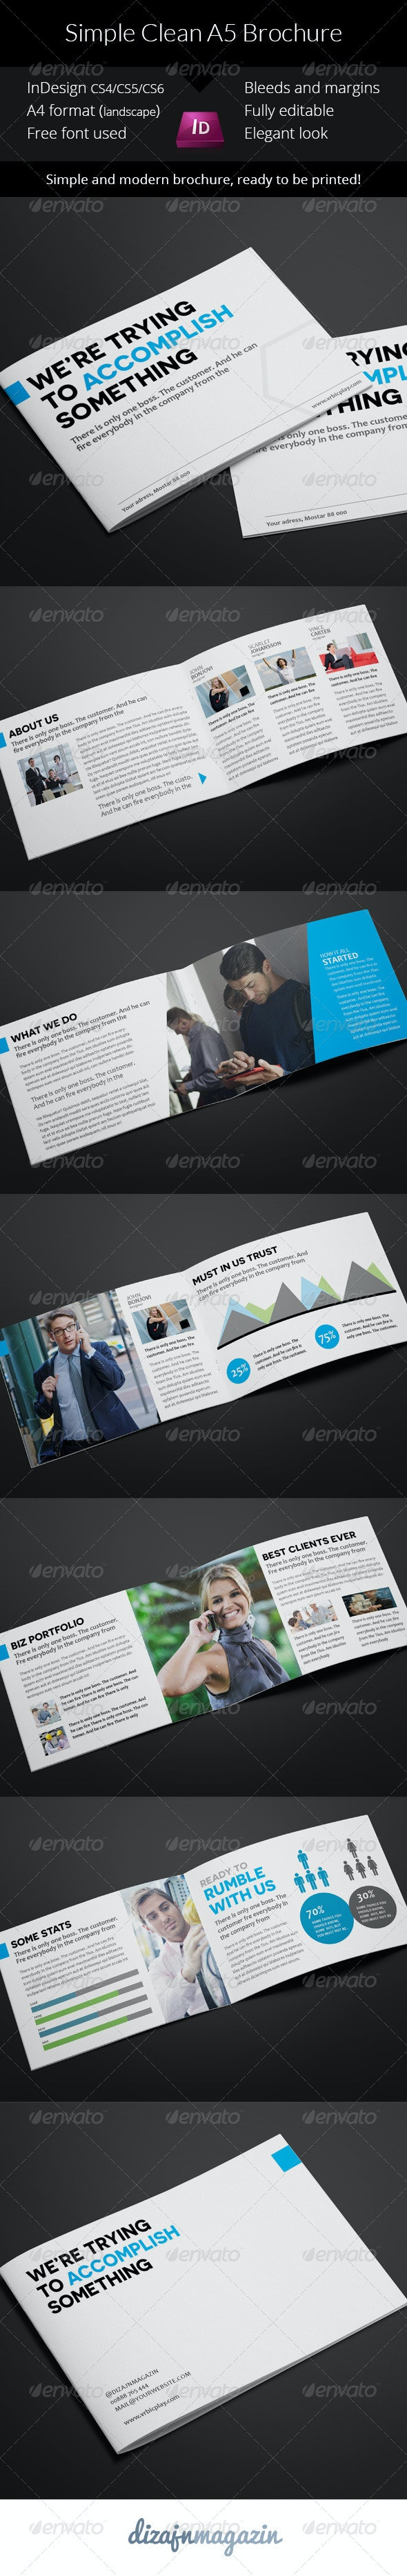 Simple Clean A5 Brochure - InDesign Template - Brochures Print Templates